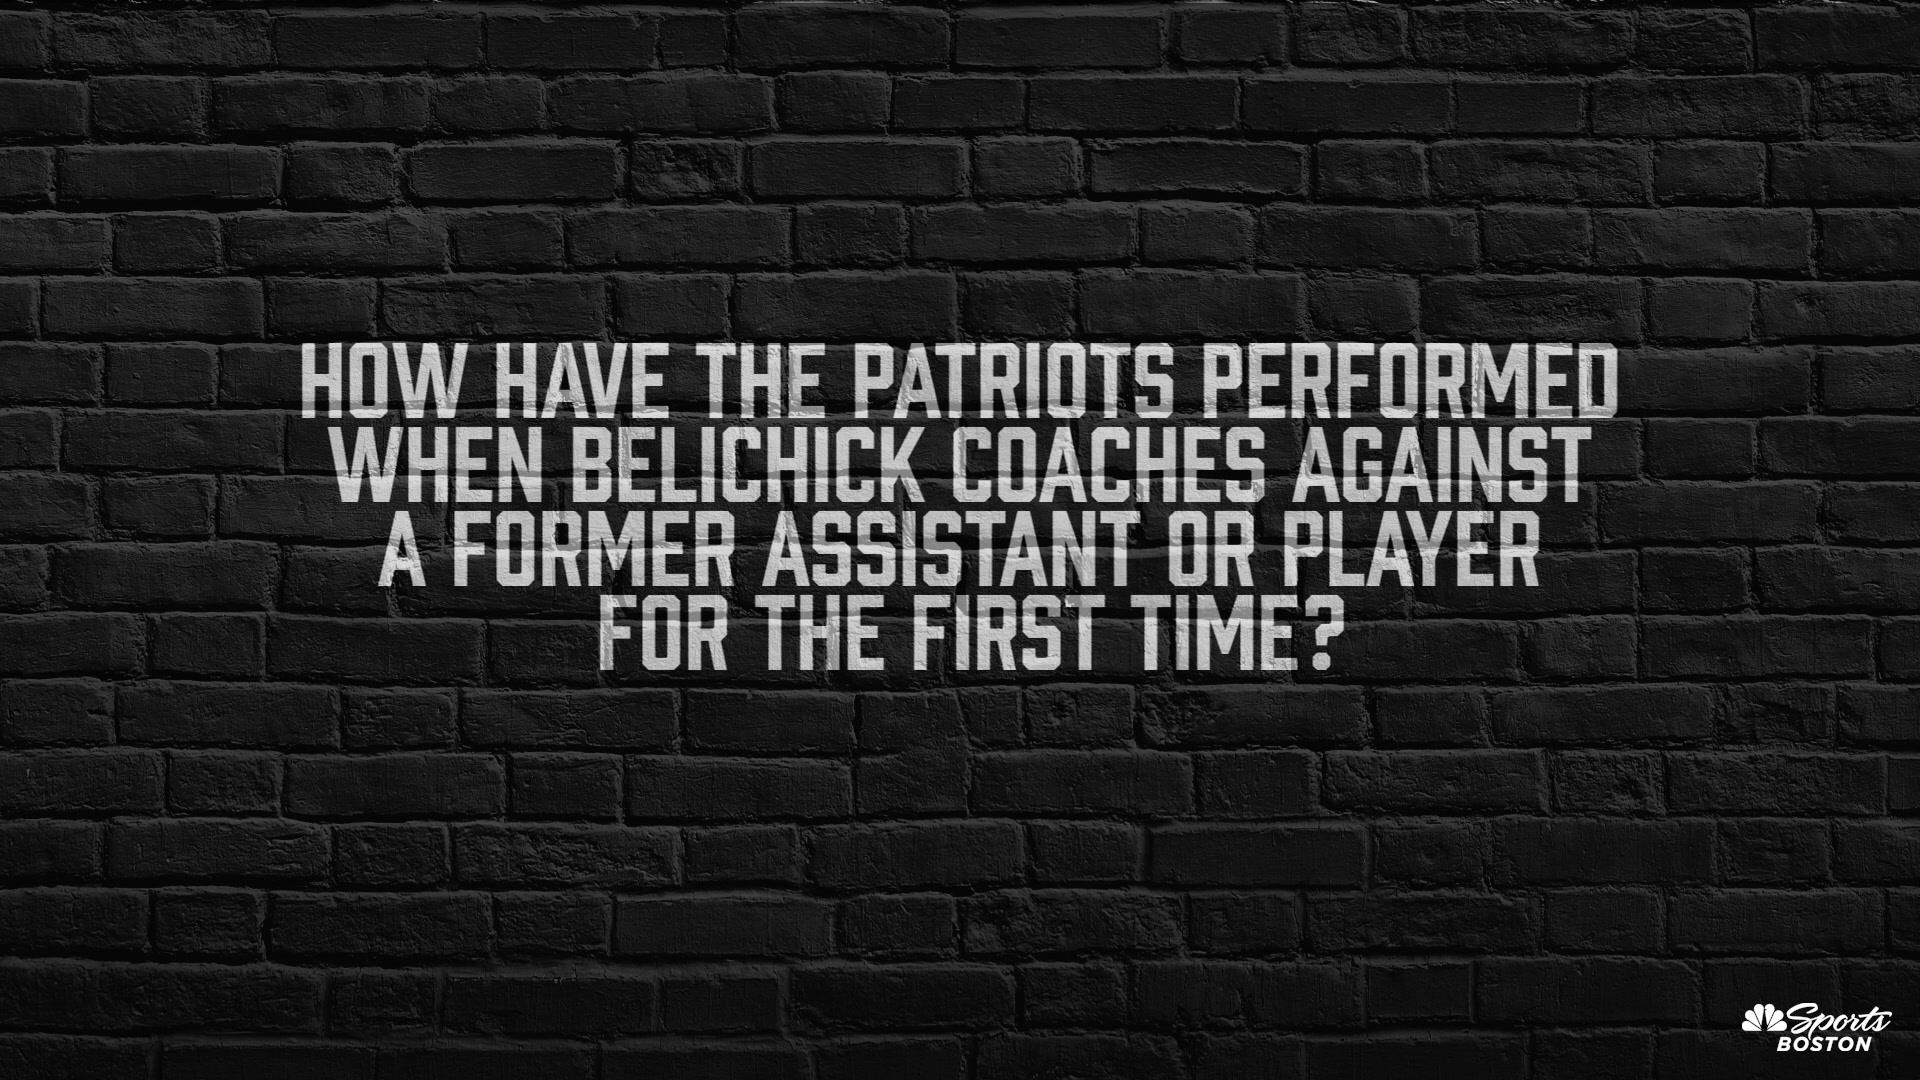 How do the Patriots play against former Belichick assistants/players?